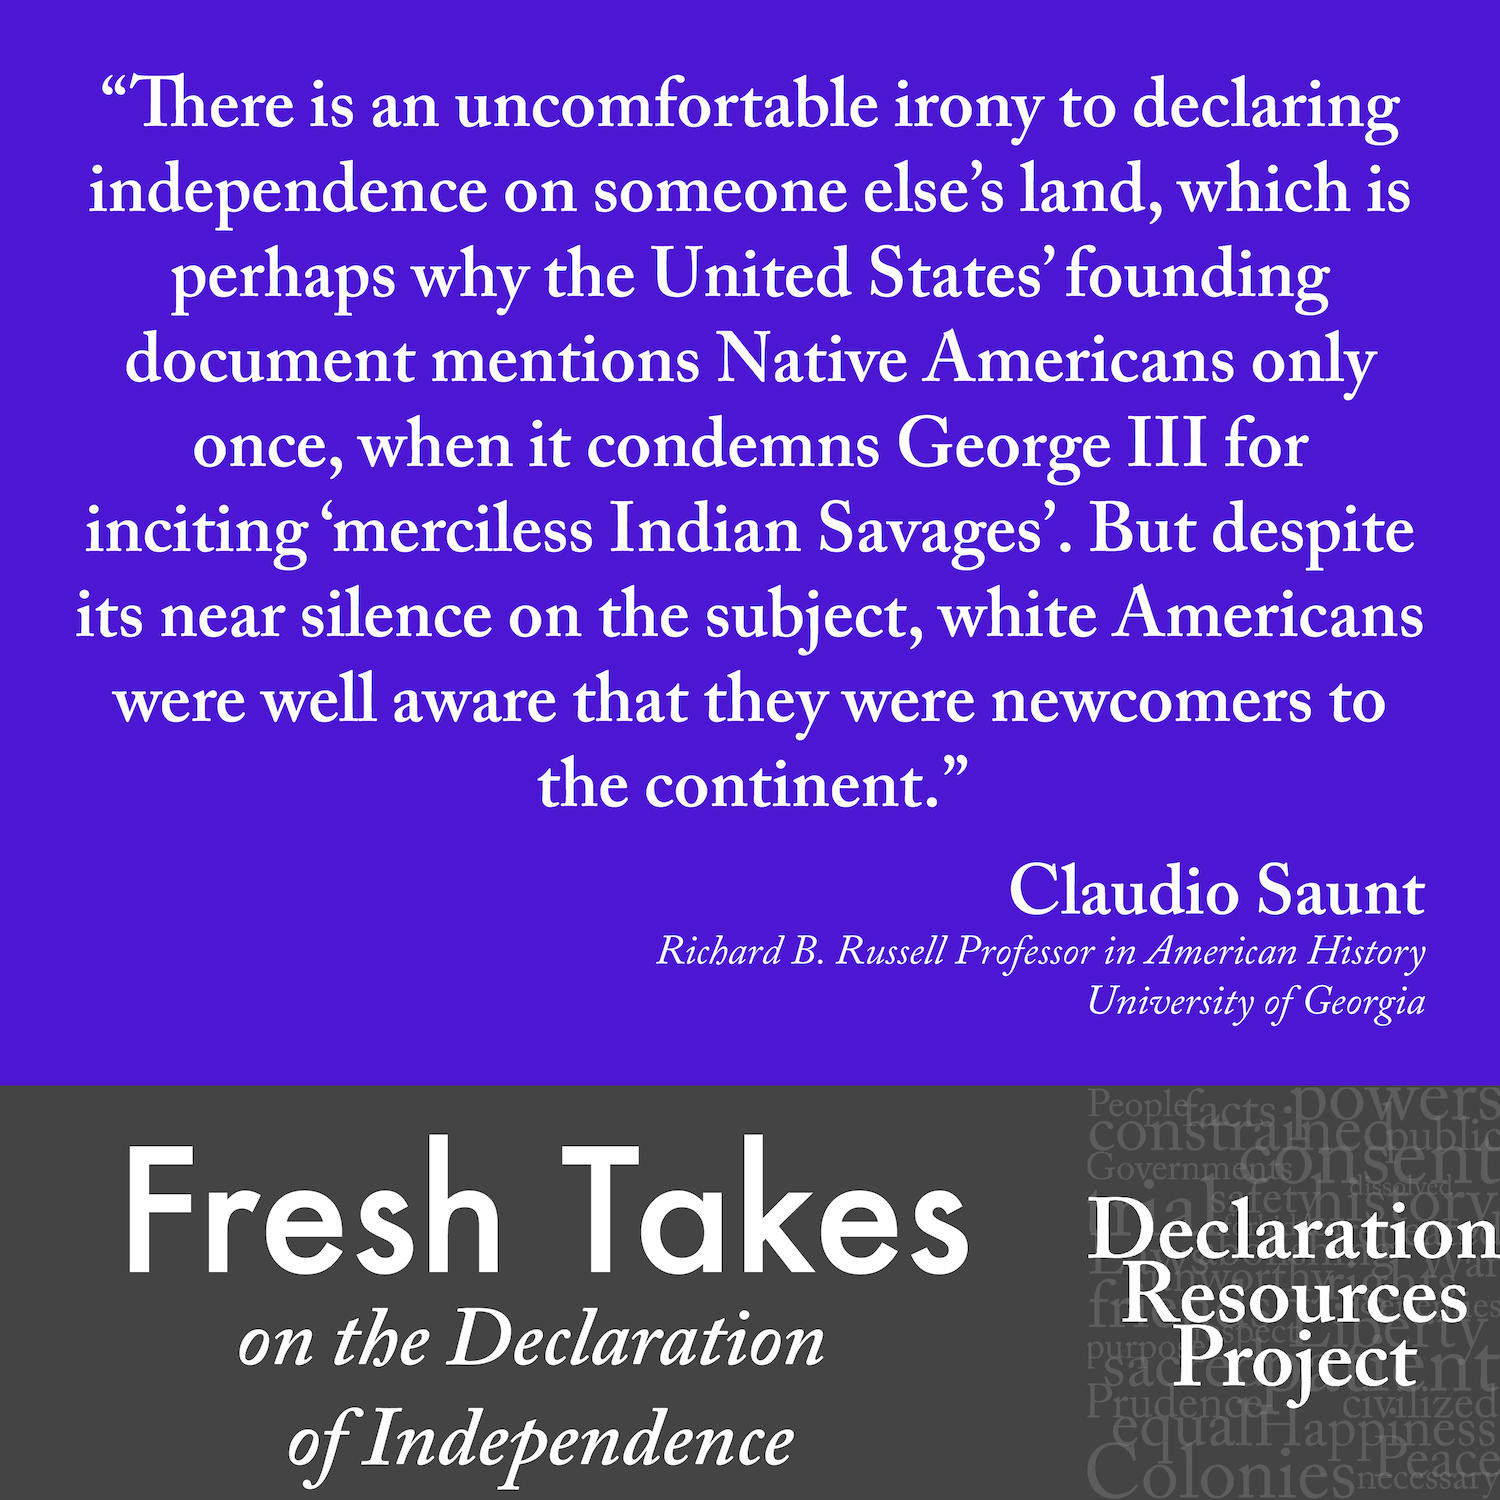 Claudio Saunt's Fresh Take on the Declaration of Independence